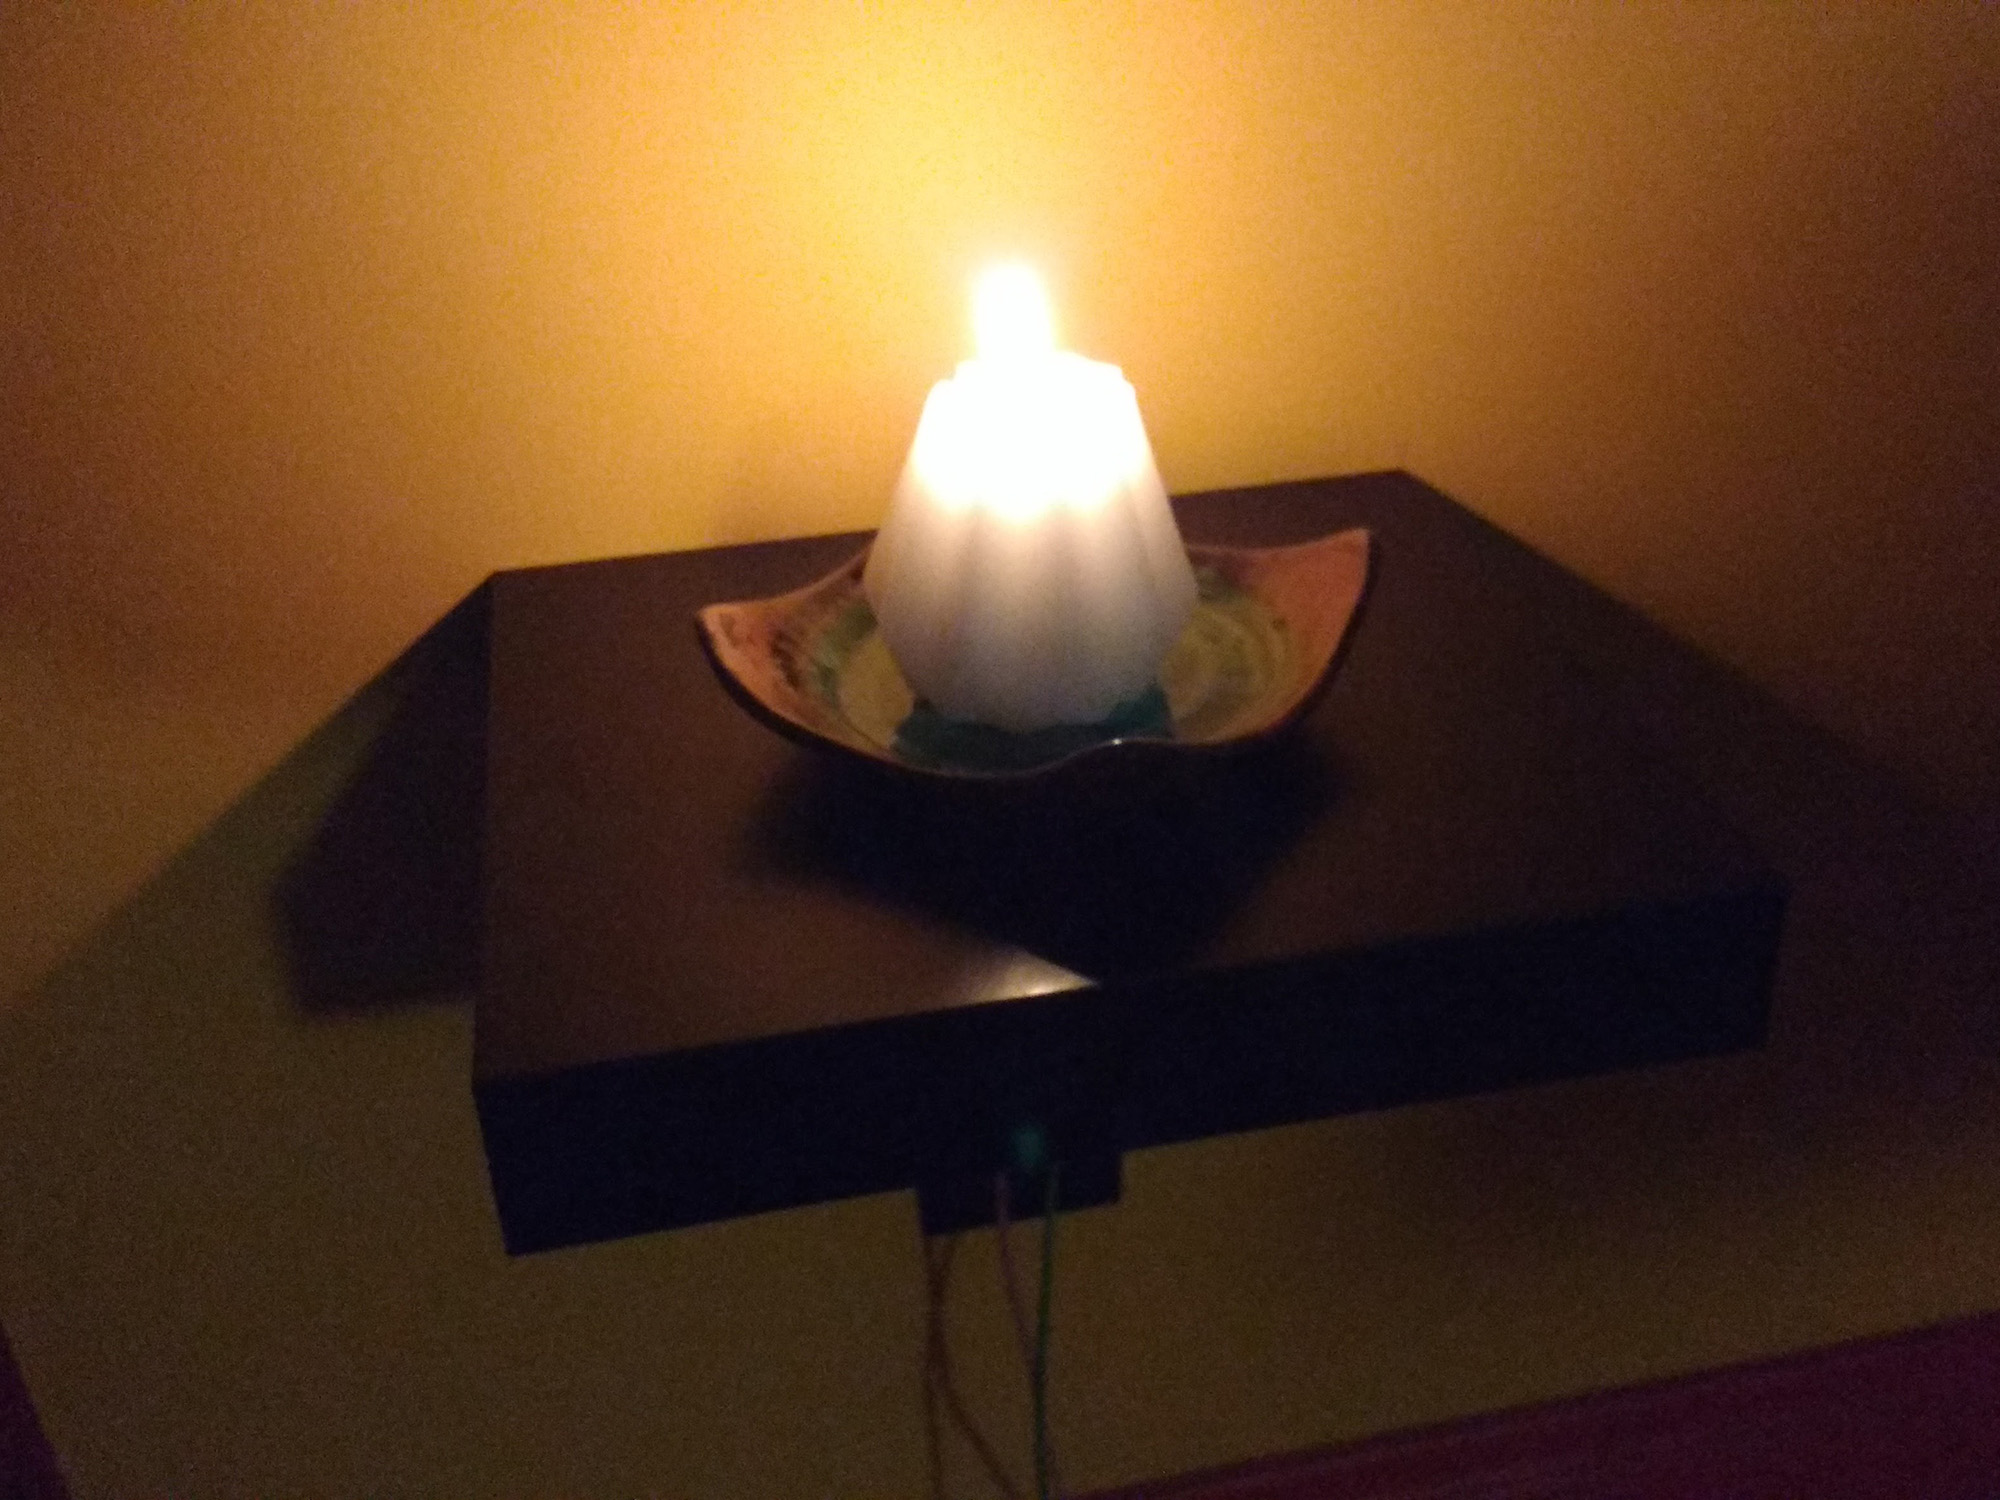 A candle and its flame glowing on a small shelf